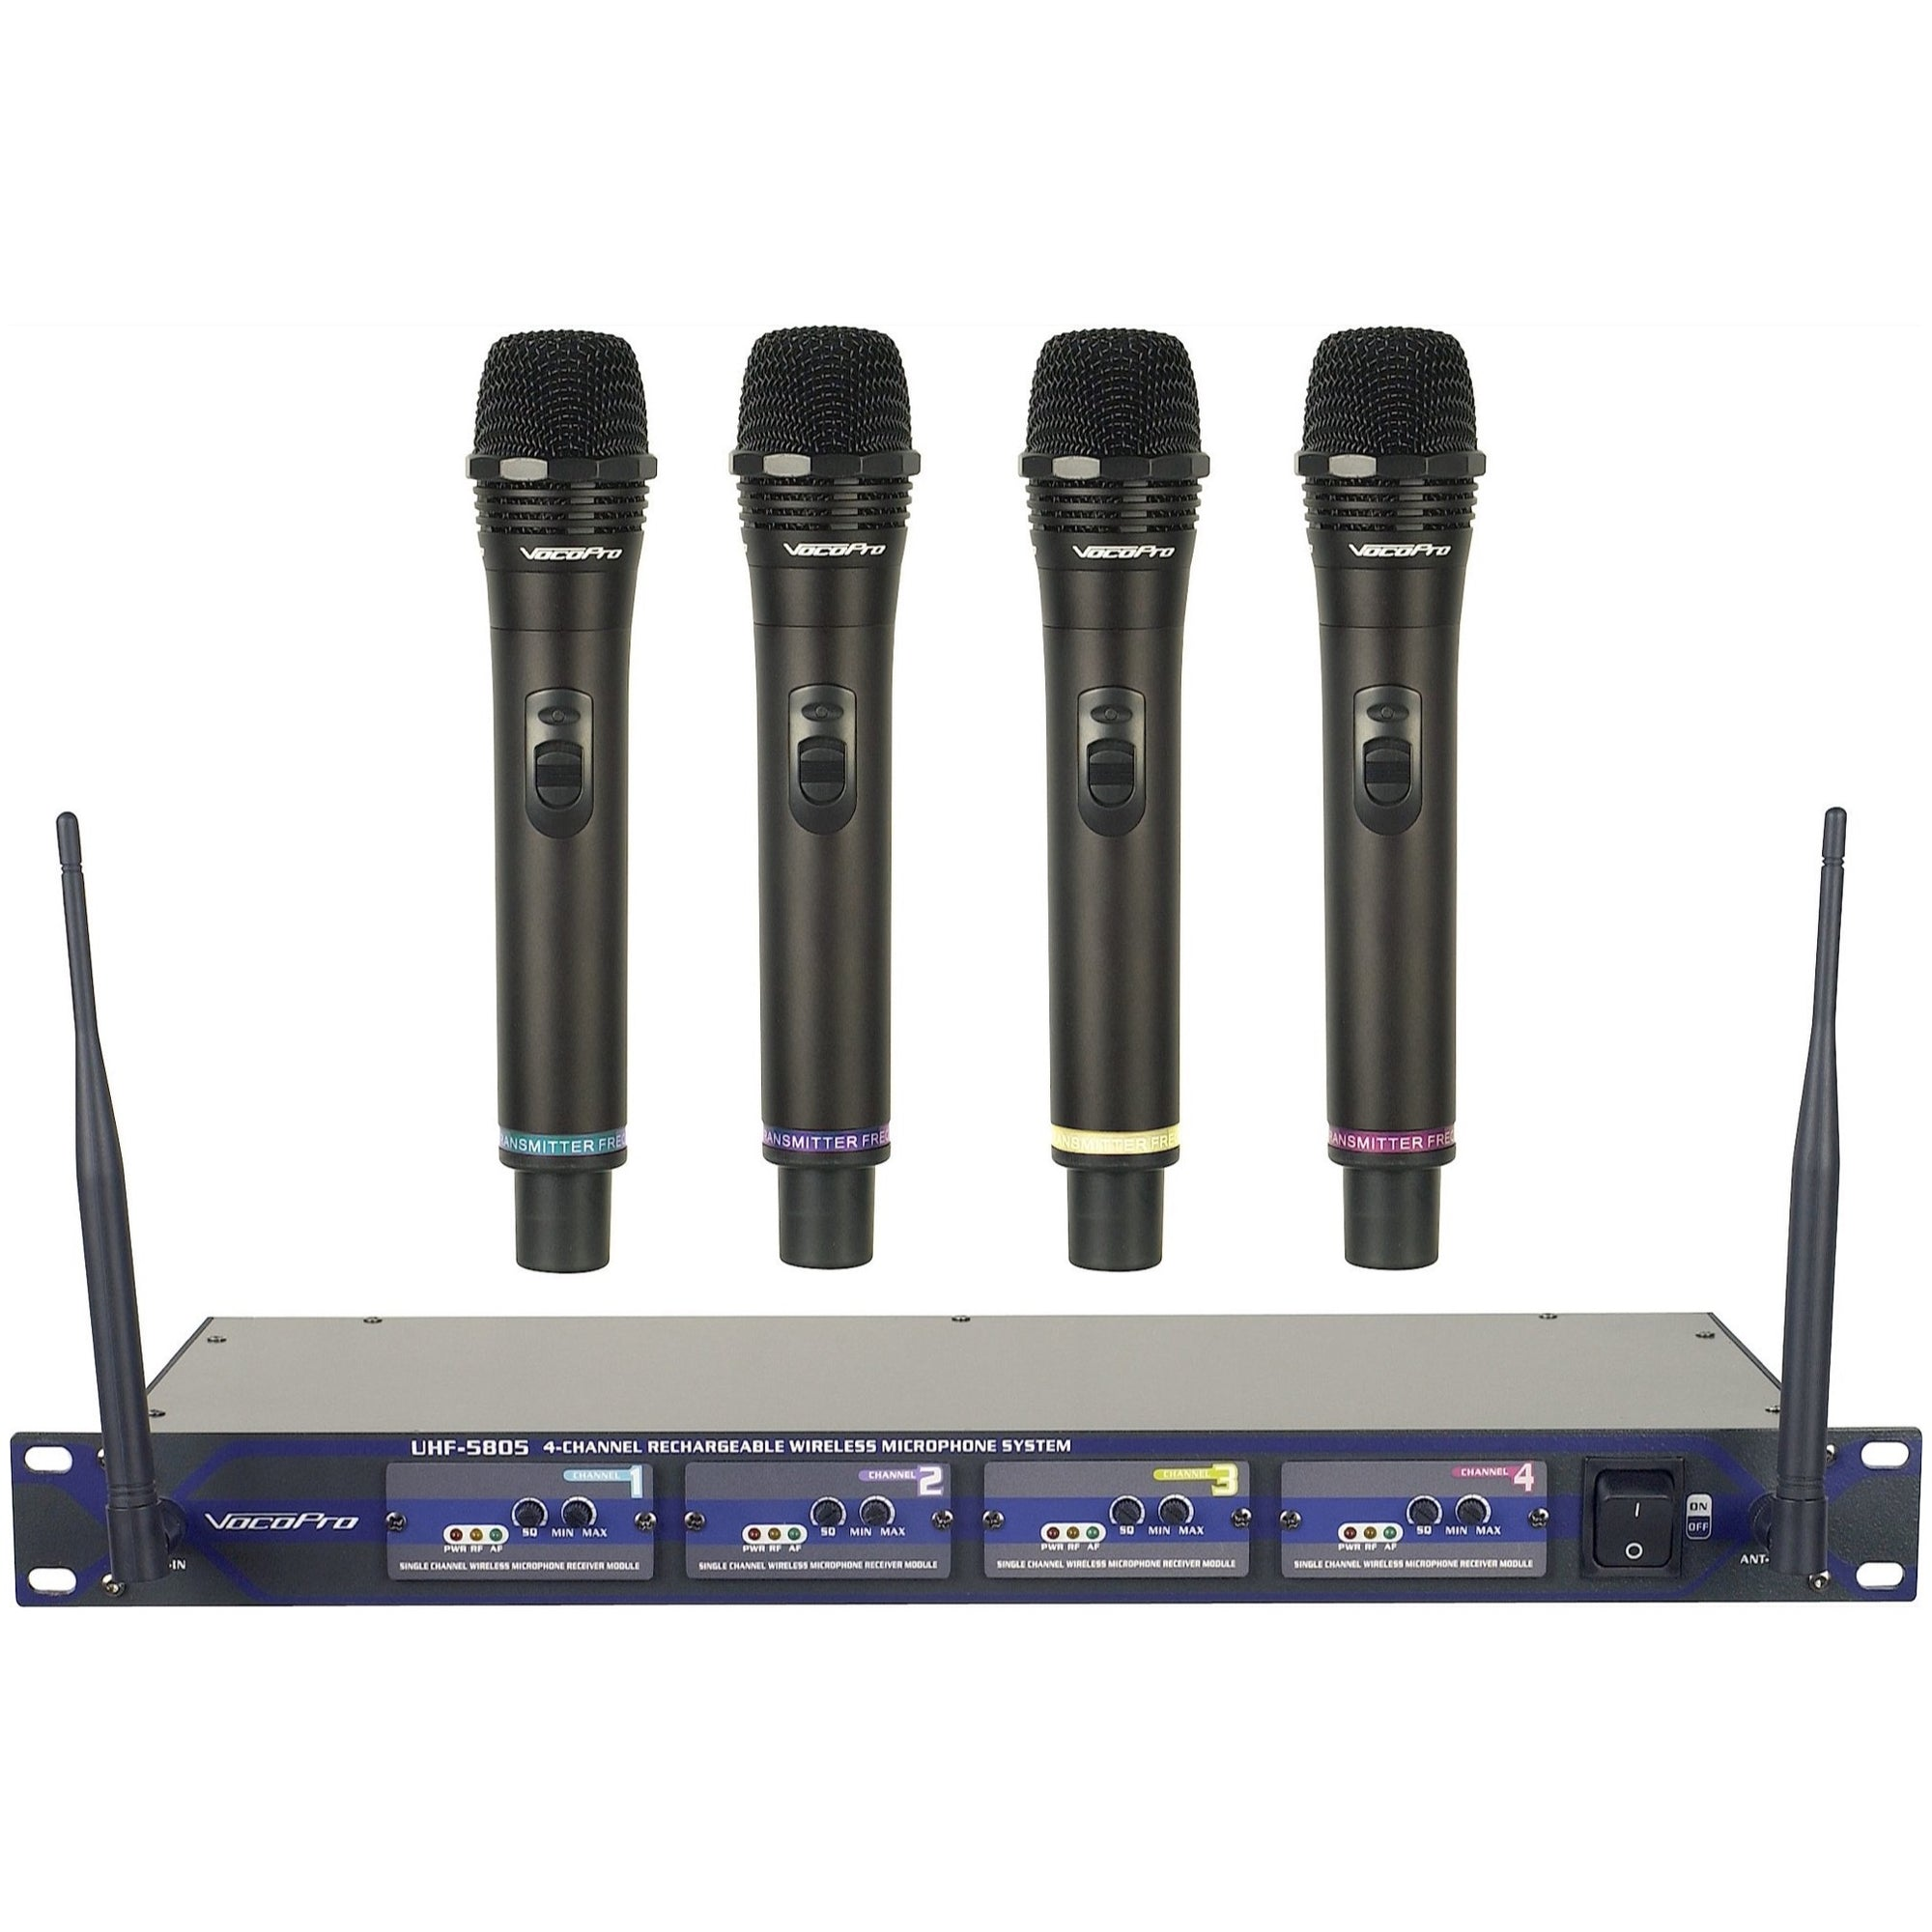 VocoPro UHF-5805 4-Channel Rechargeable Handheld Wireless Microphone System